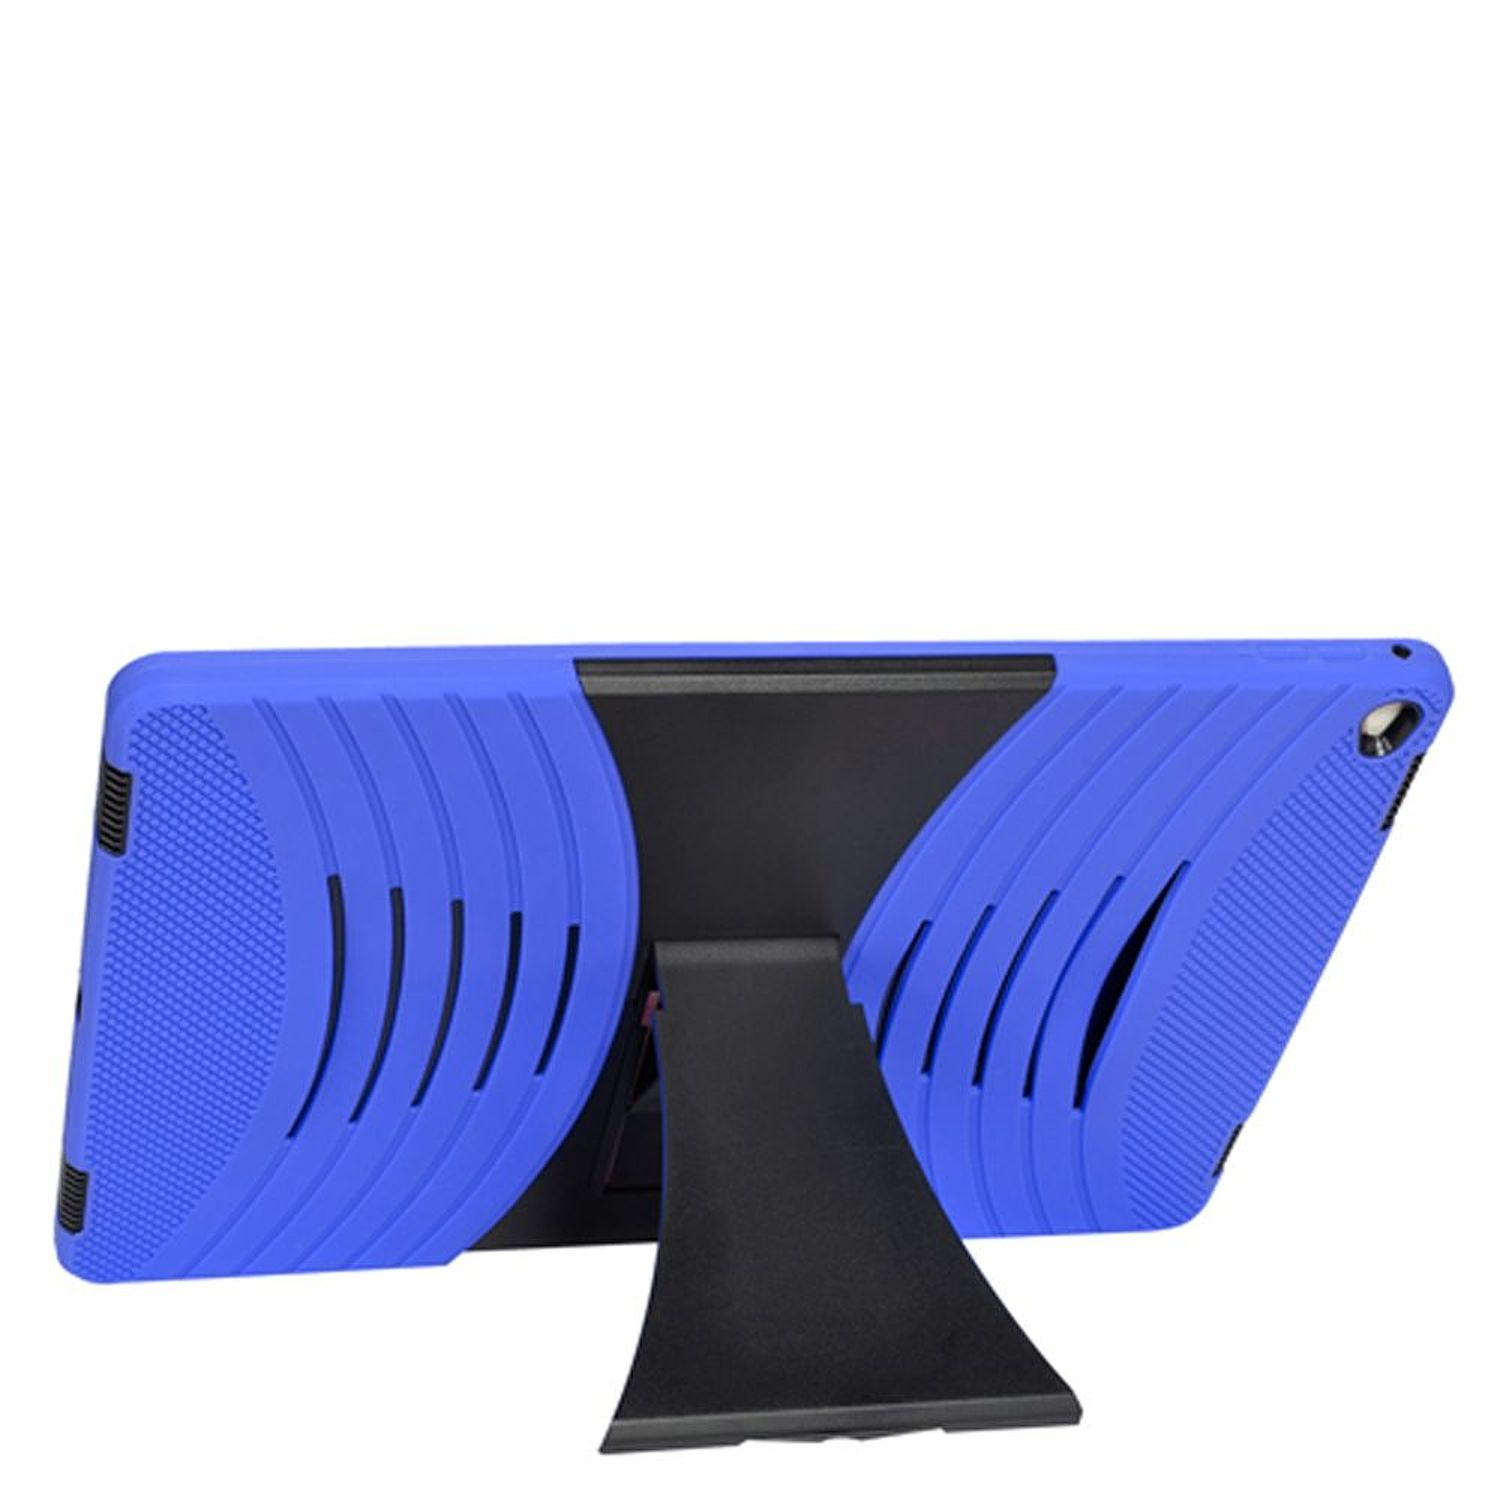 "iPad Pro 12.9"" Cover Case, by Insten Dual Layer [Shock Absorbing] Hybrid Stand Rubber Silicone/Plastic Case Cover For Apple iPad Pro 12.9"", Blue/Black"